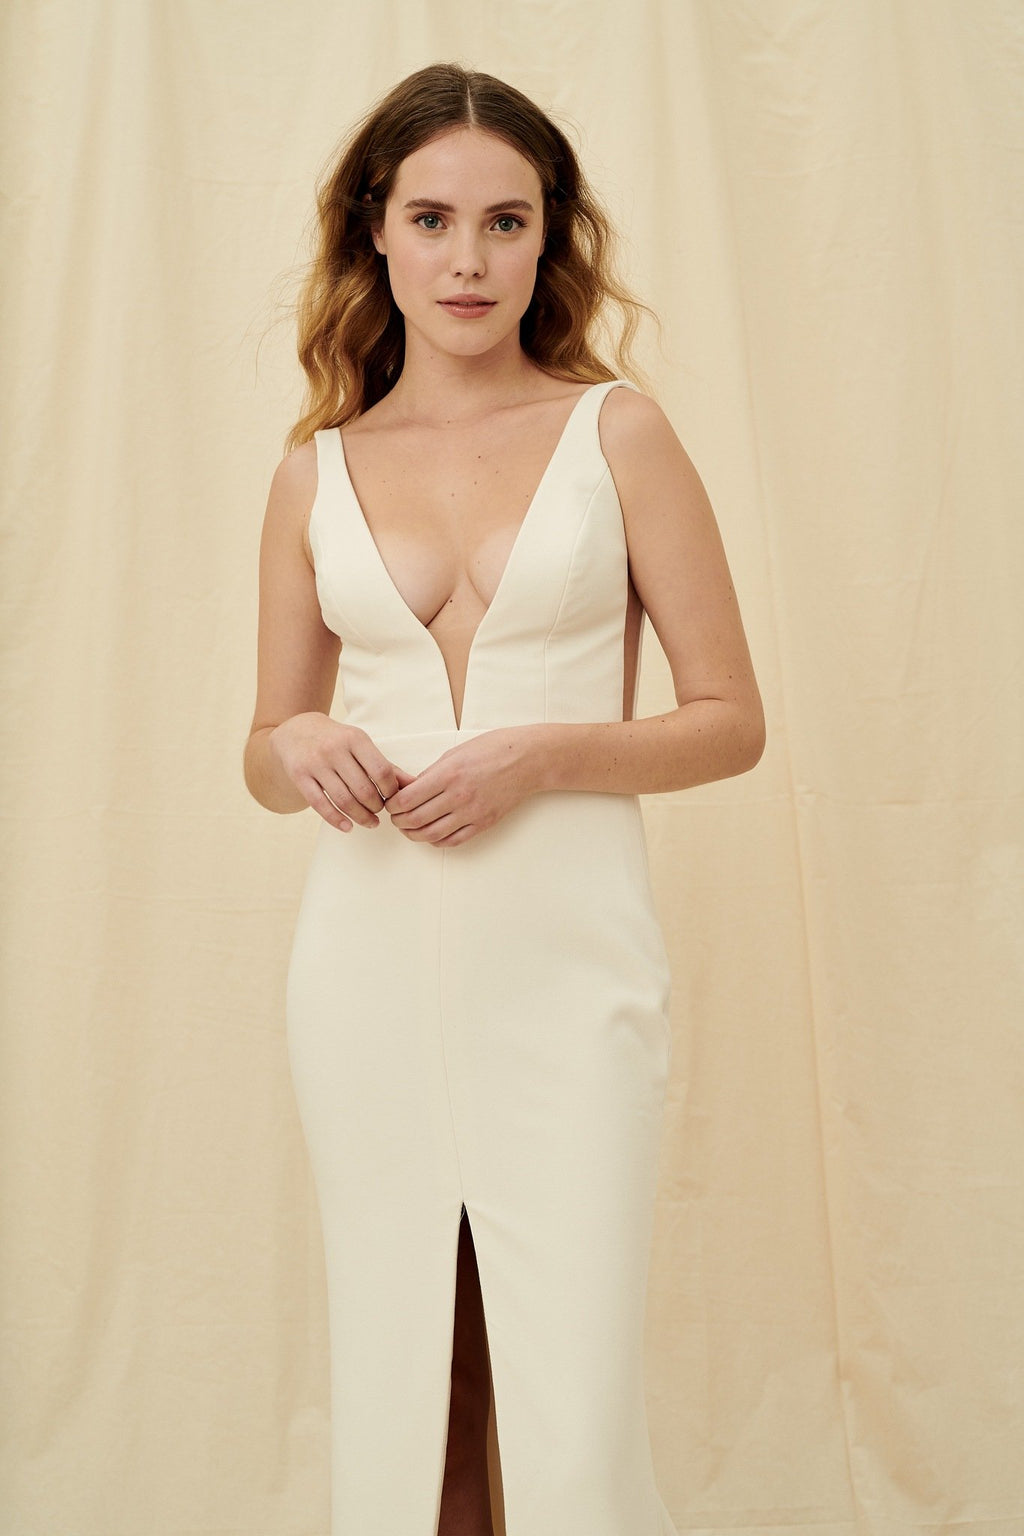 Simple low cut crepe wedding gown with a deep v back and a centre slit skirt